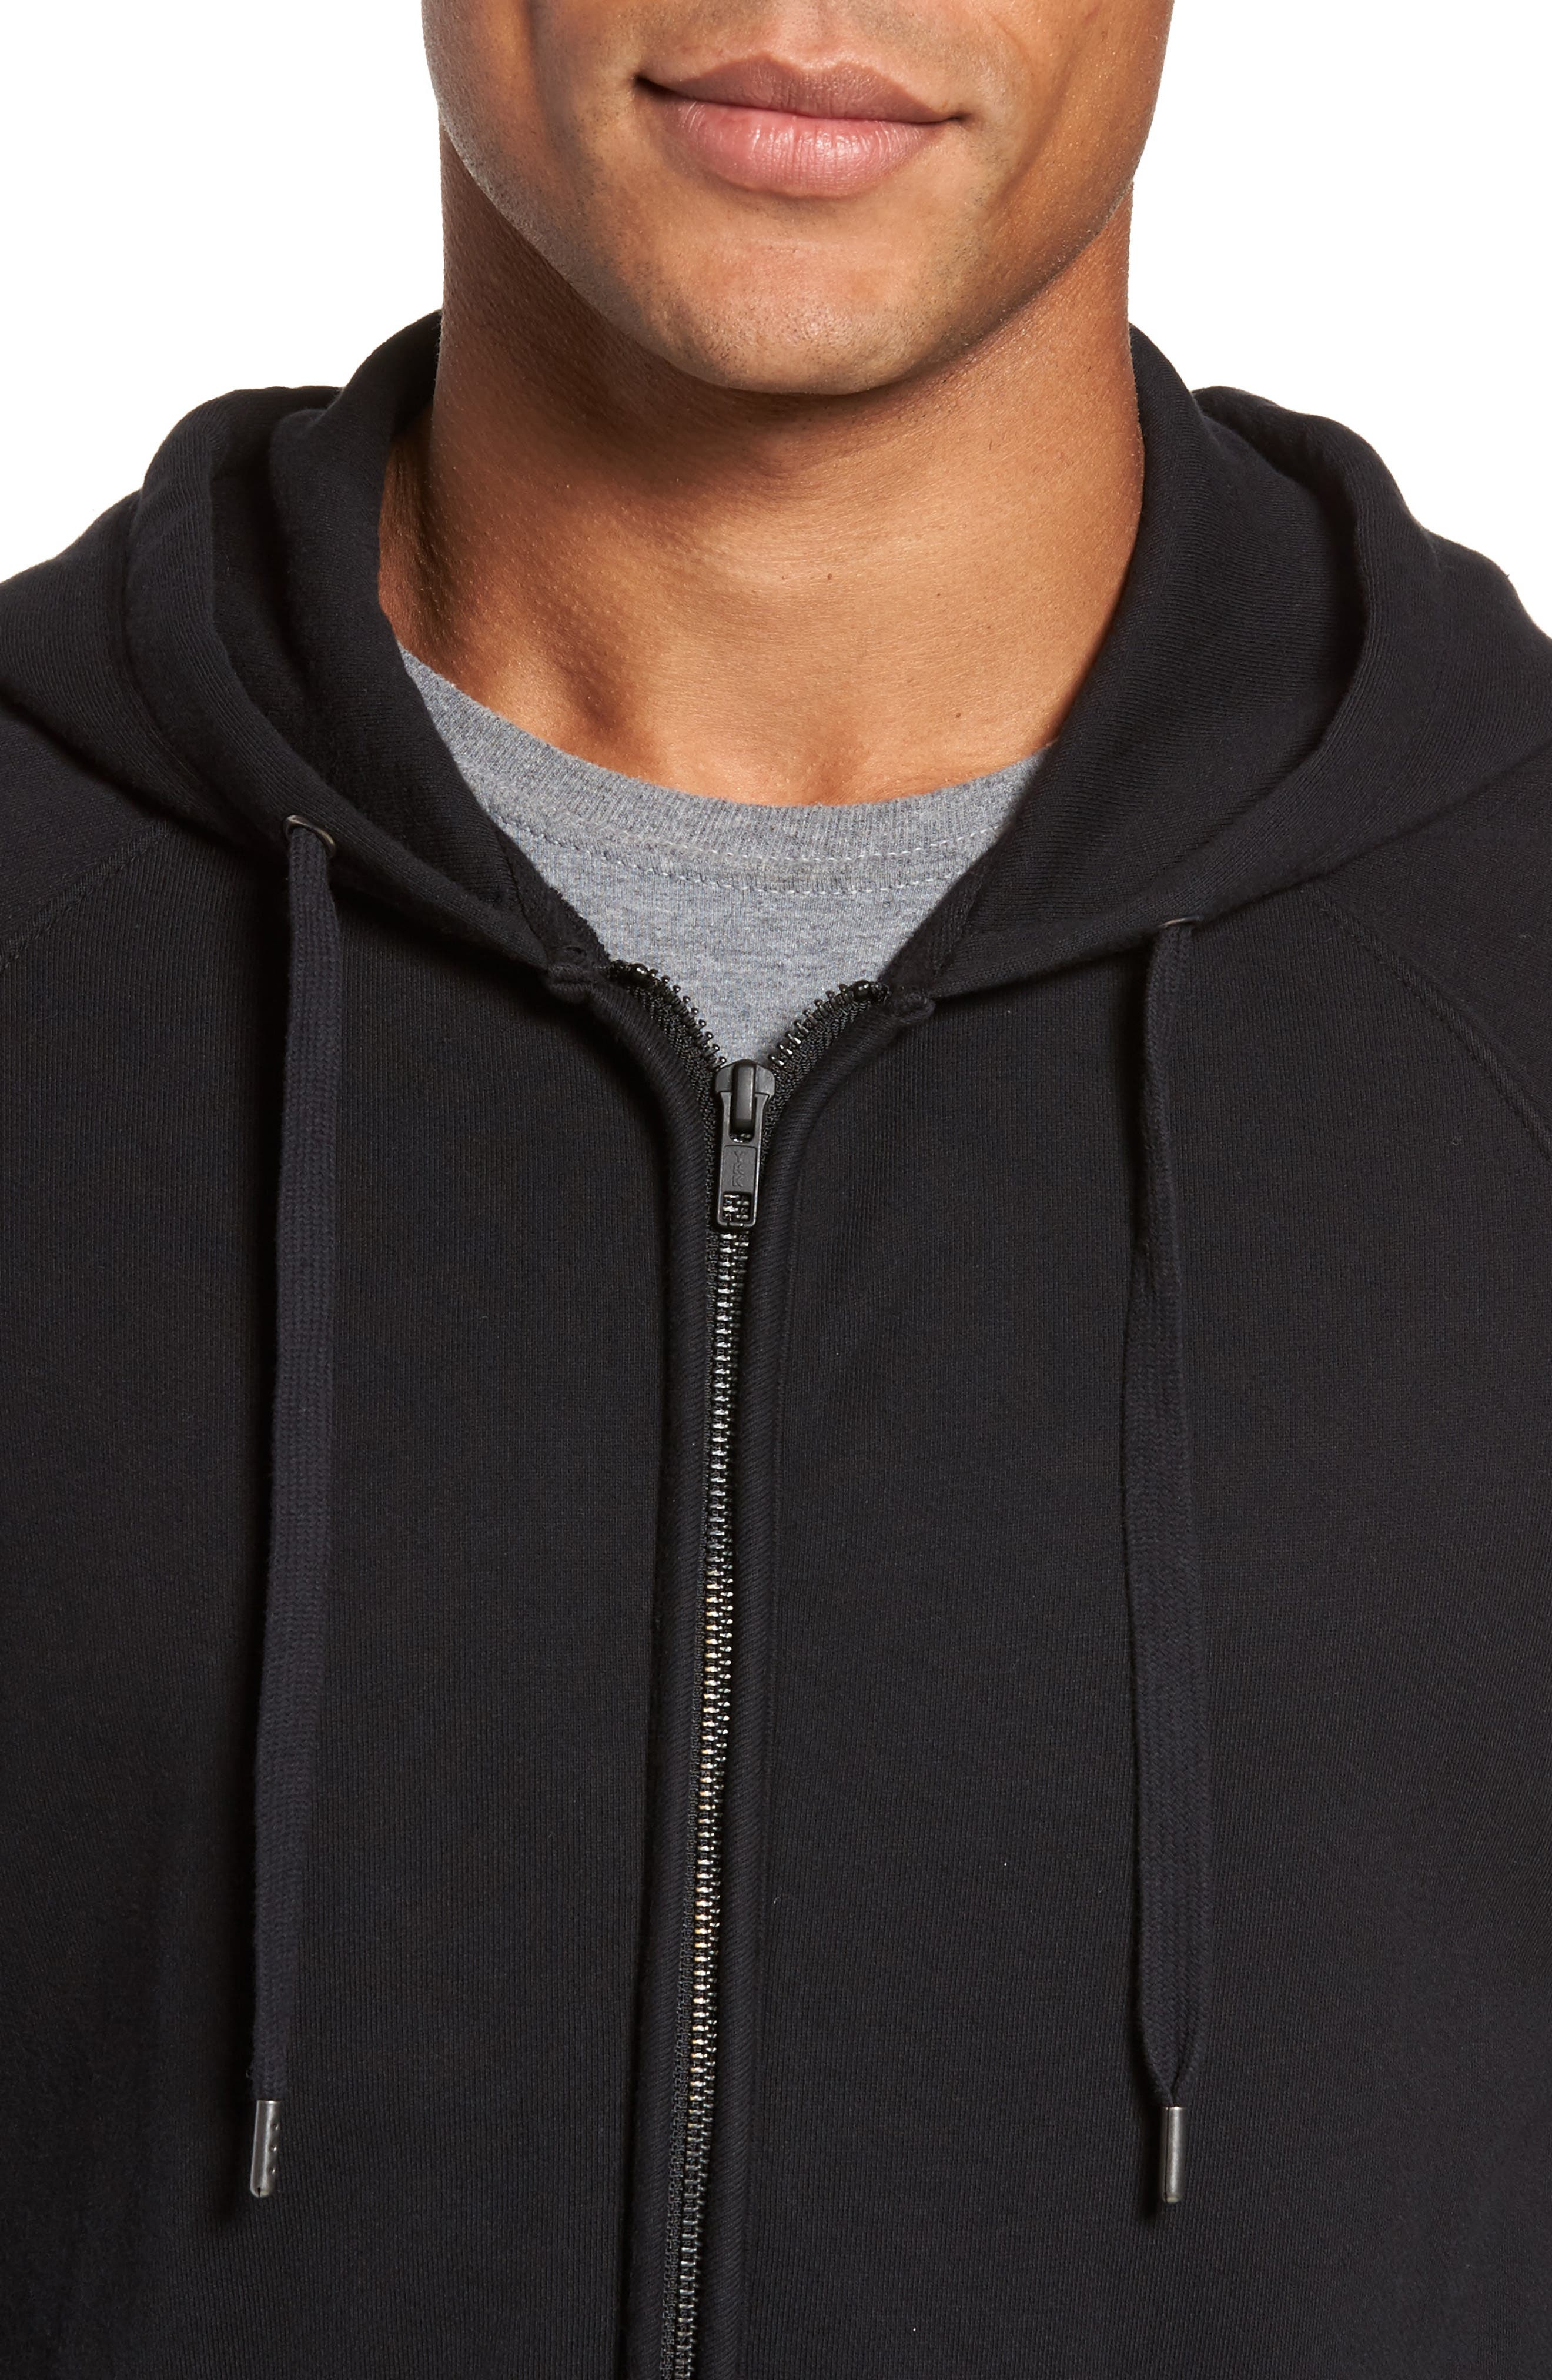 French Terry Zip Hoodie,                             Alternate thumbnail 4, color,                             001